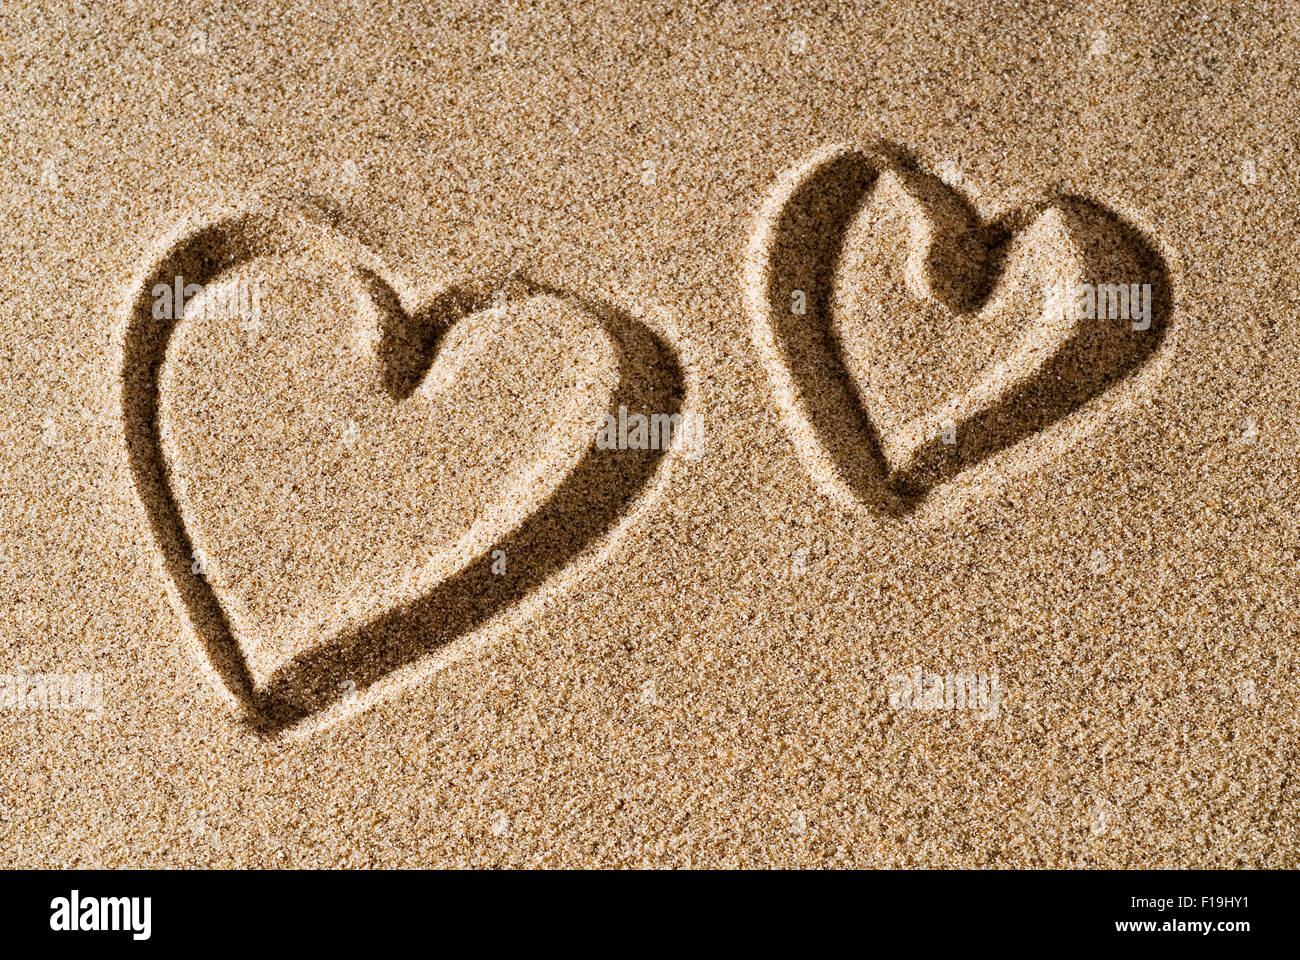 A heart painted in the sand - Stock Image